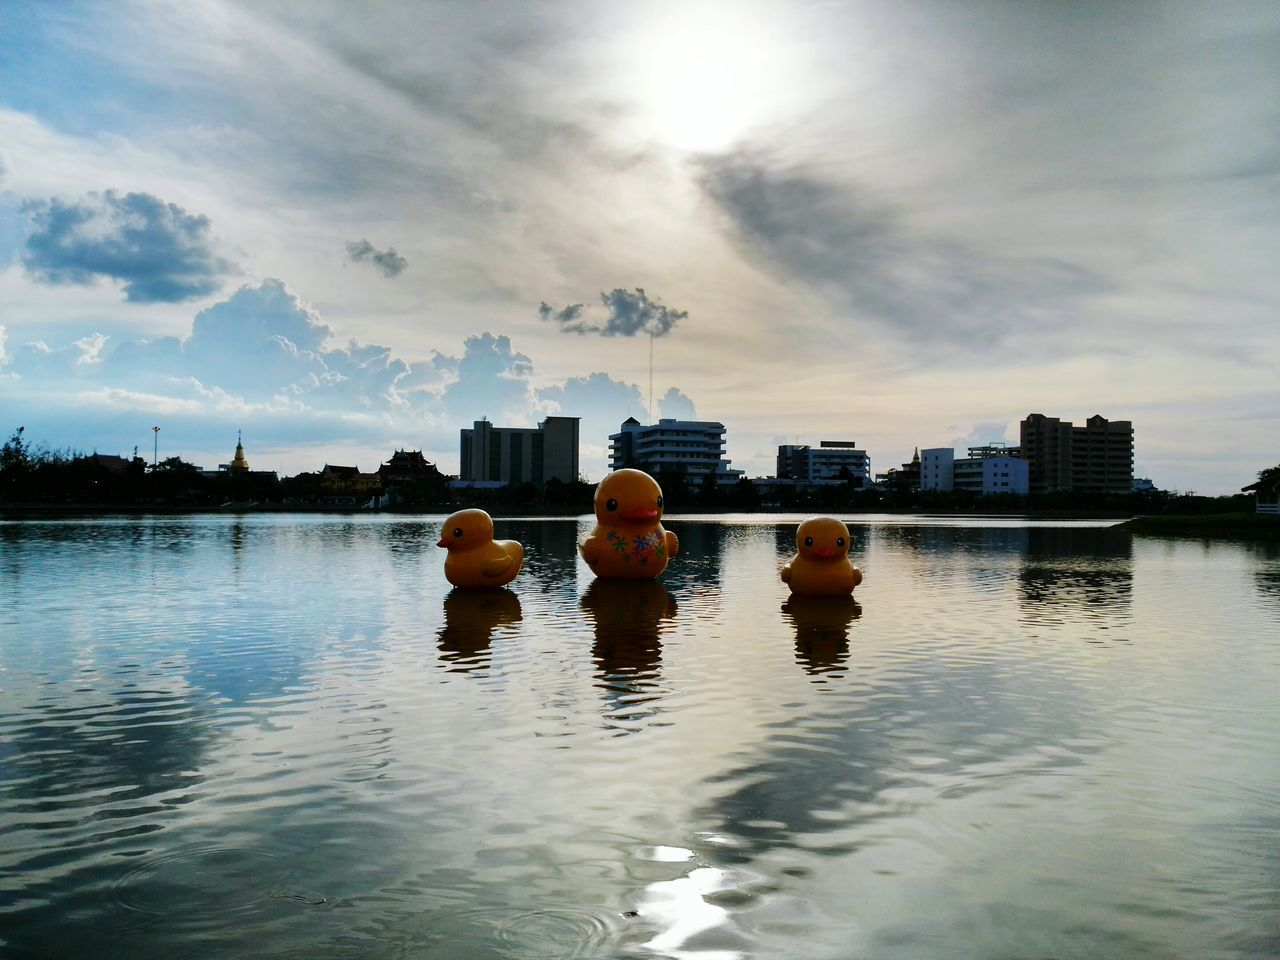 water, architecture, building exterior, built structure, cloud - sky, sky, reflection, skyscraper, waterfront, city, outdoors, men, day, modern, cityscape, people